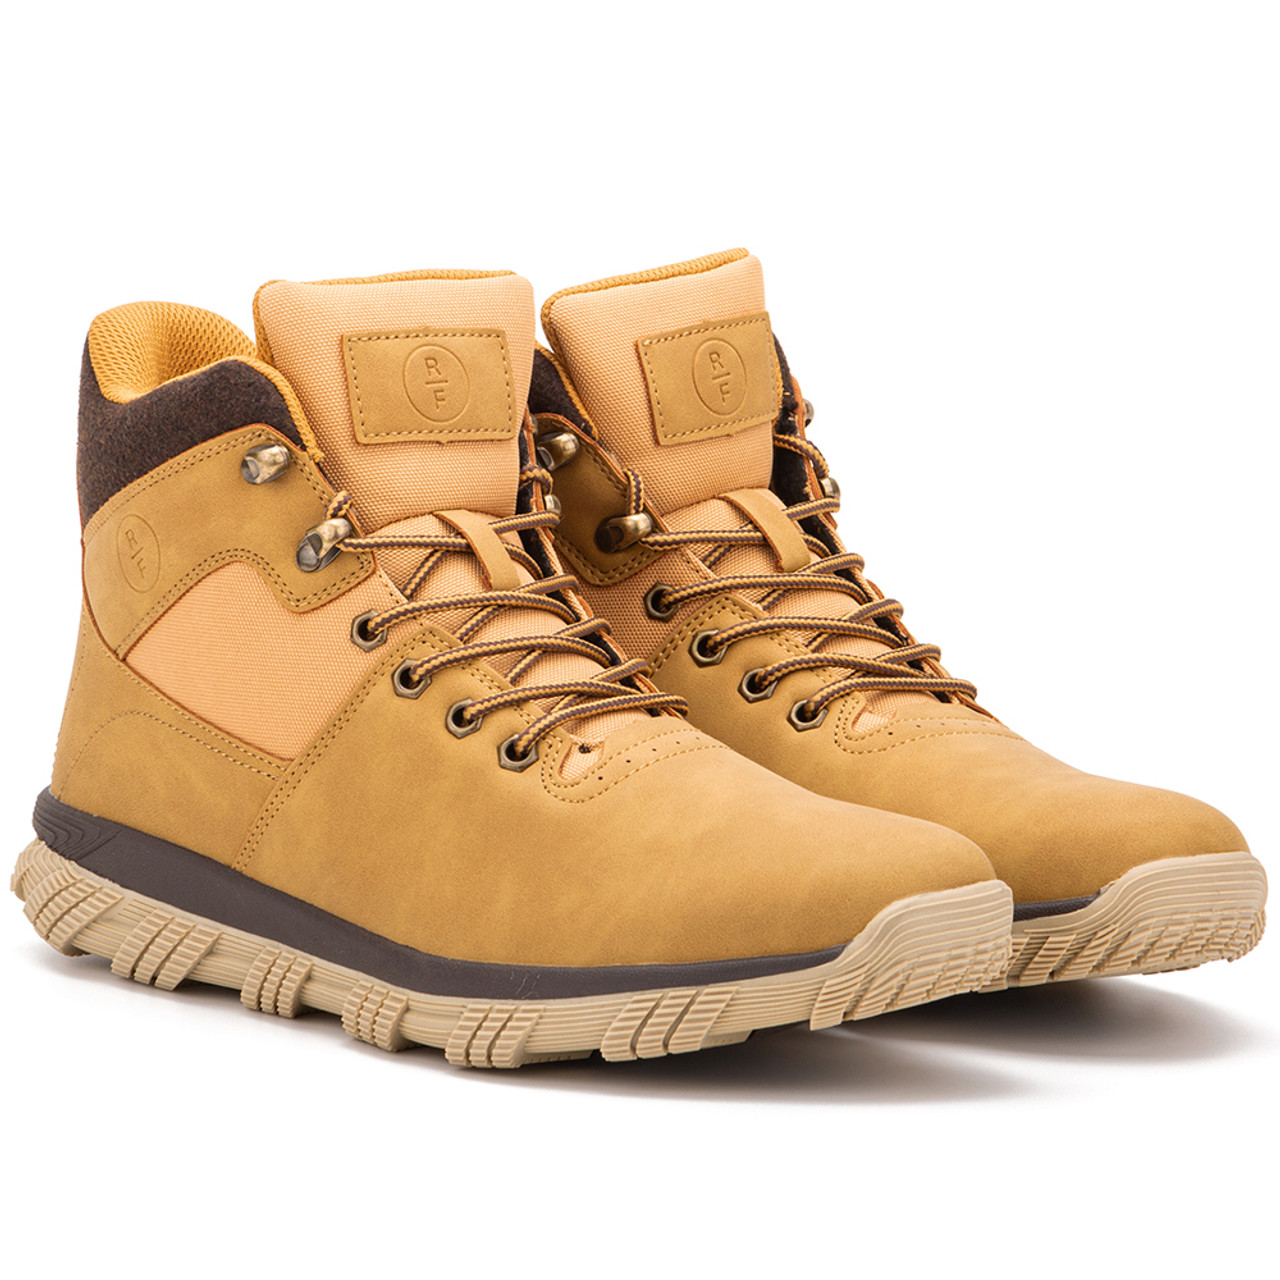 Reserved Footwear New York Darnell Men's Work Boots $34.99 (73% OFF)